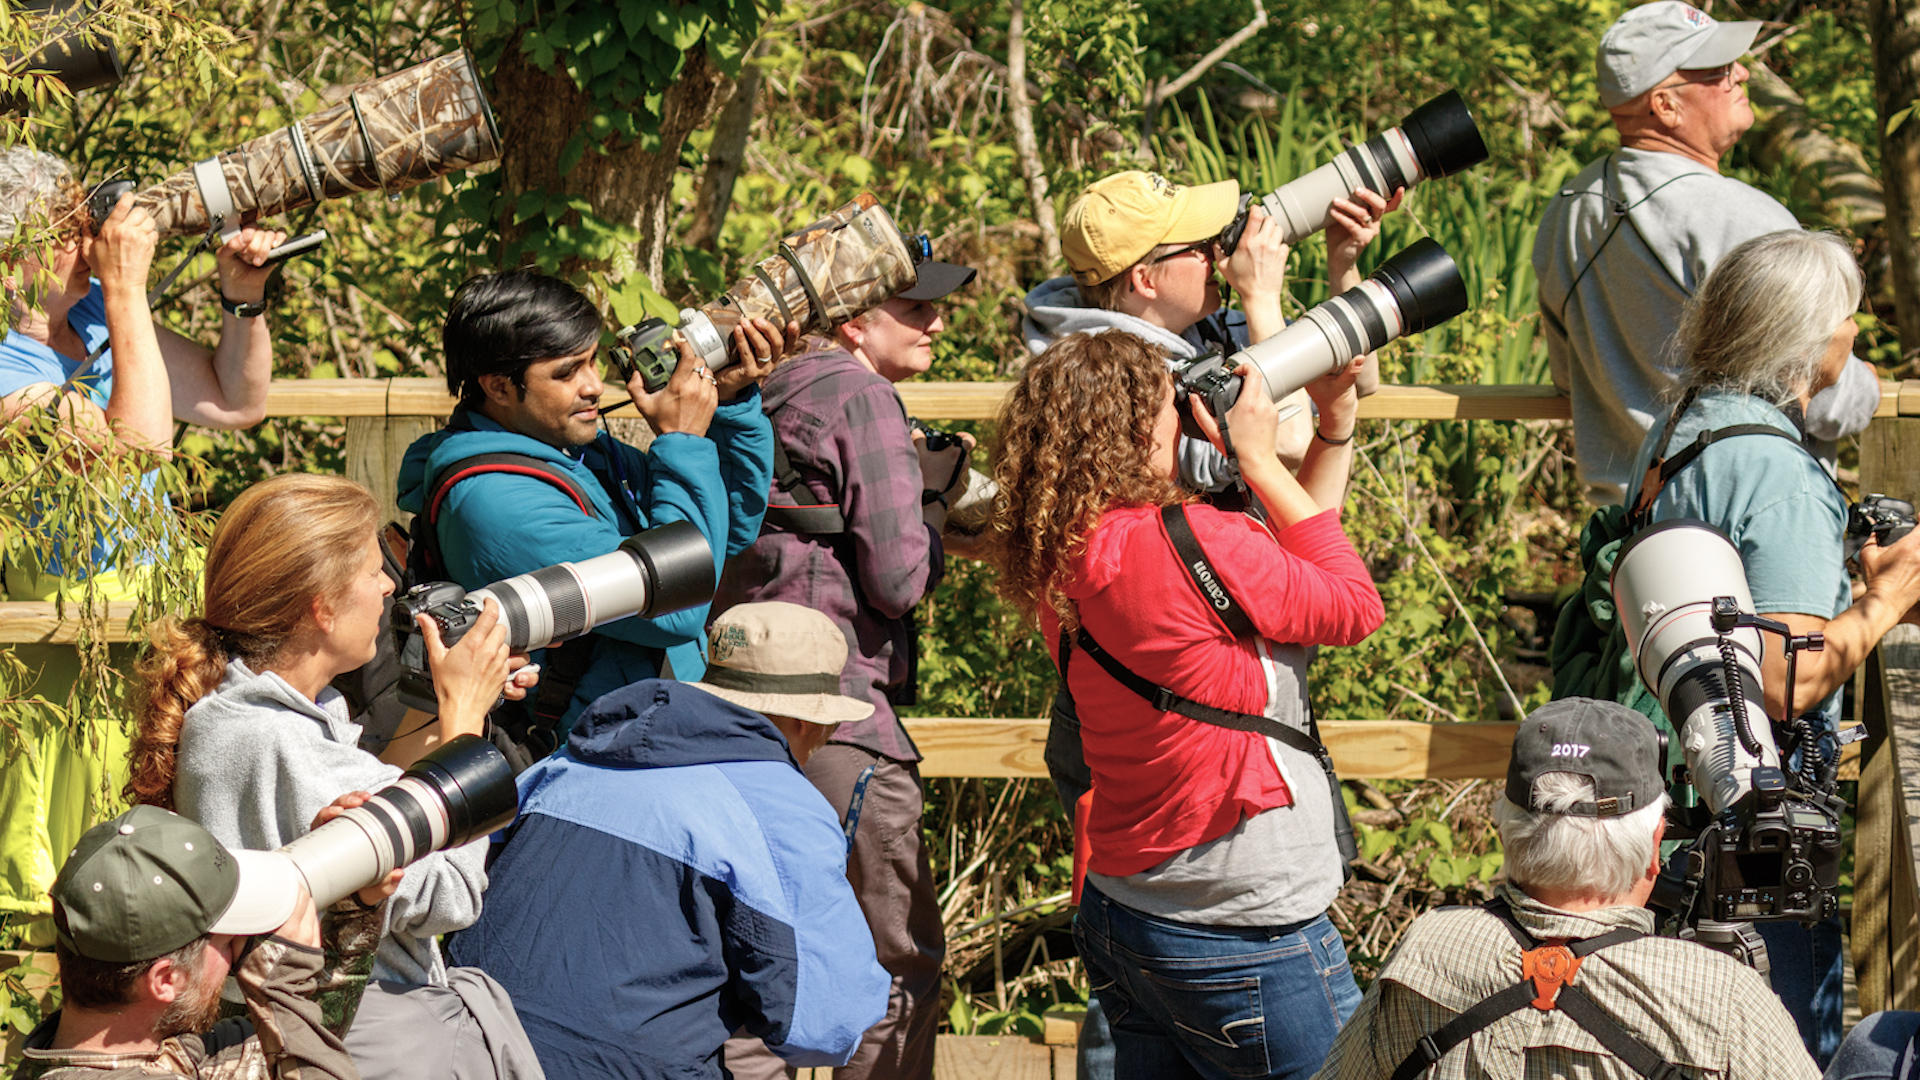 Video: Birding takes flight